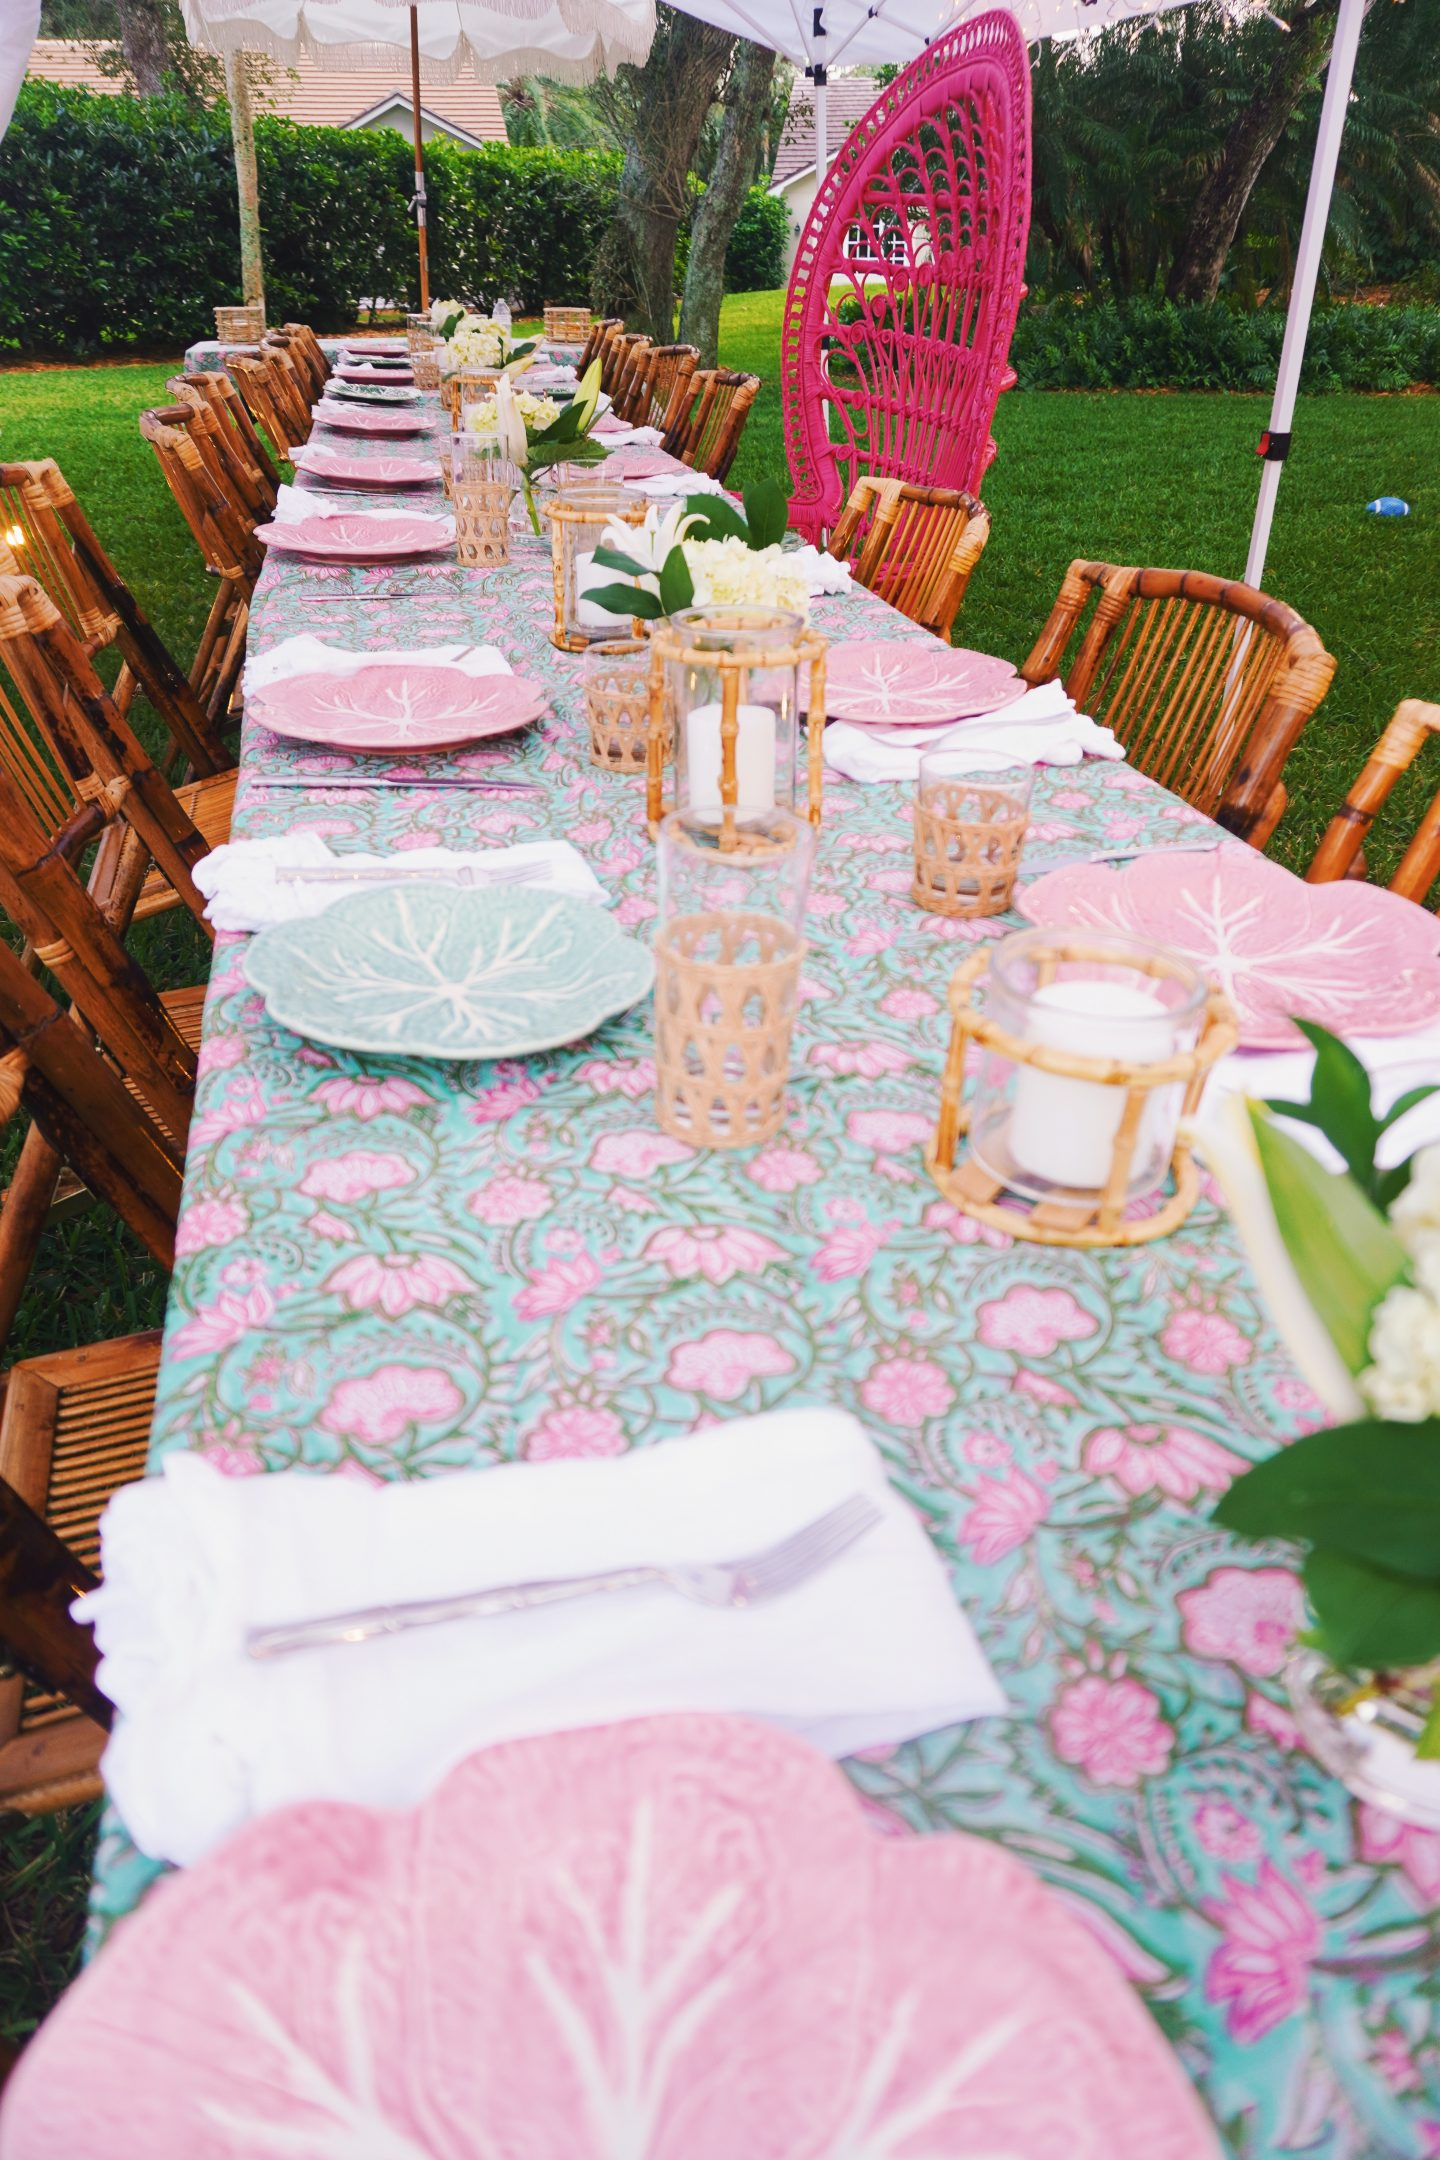 Vero Beach, Florida outdoor dinner party with block print tablecloth